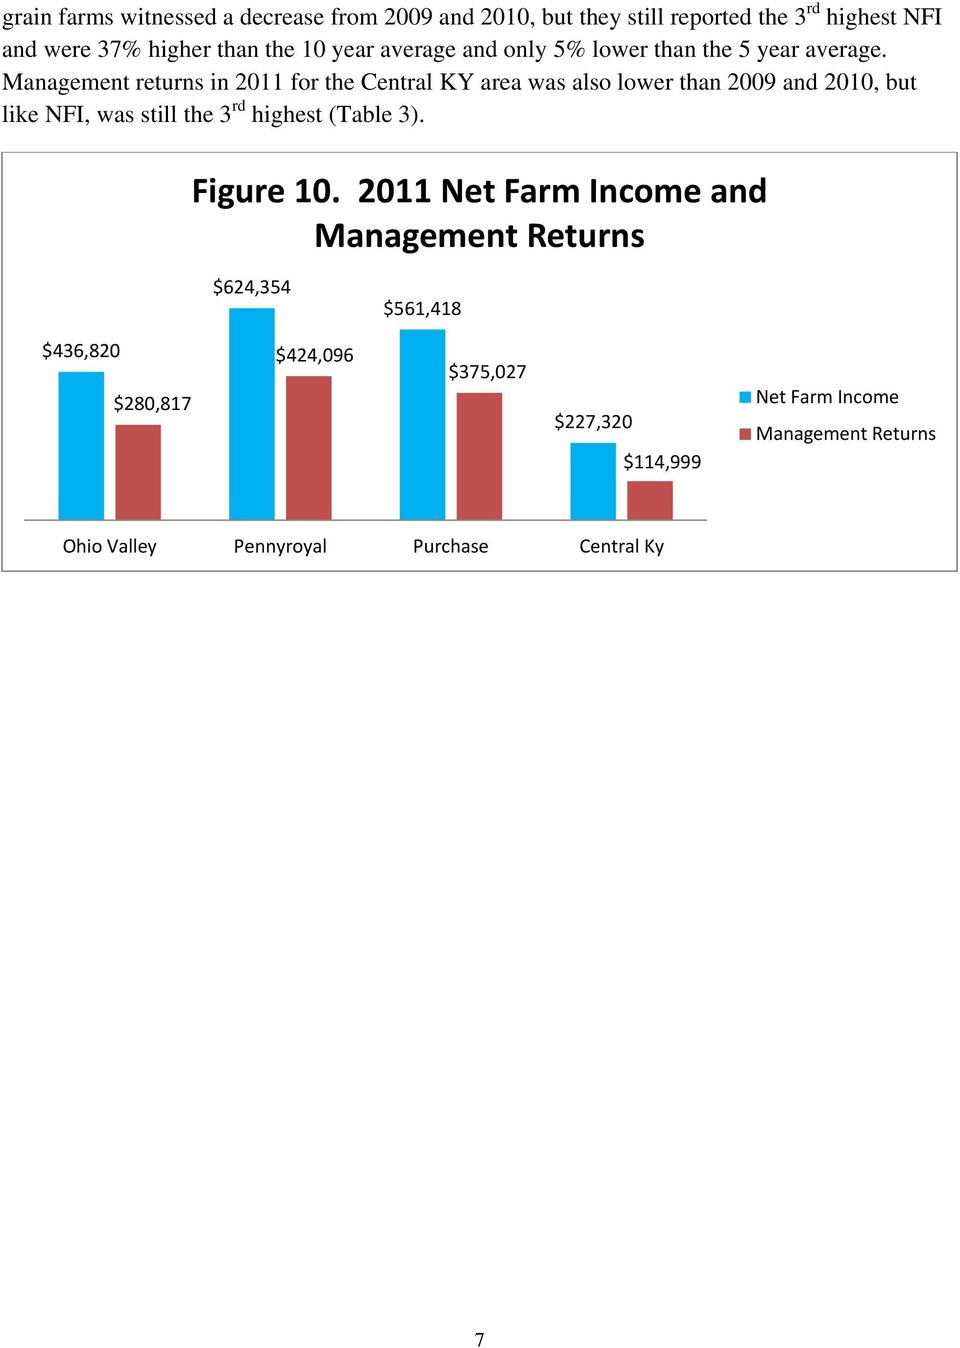 Management returns in 2011 for the Central KY area was also lower than 2009 and 2010, but like NFI, was still the 3 rd highest